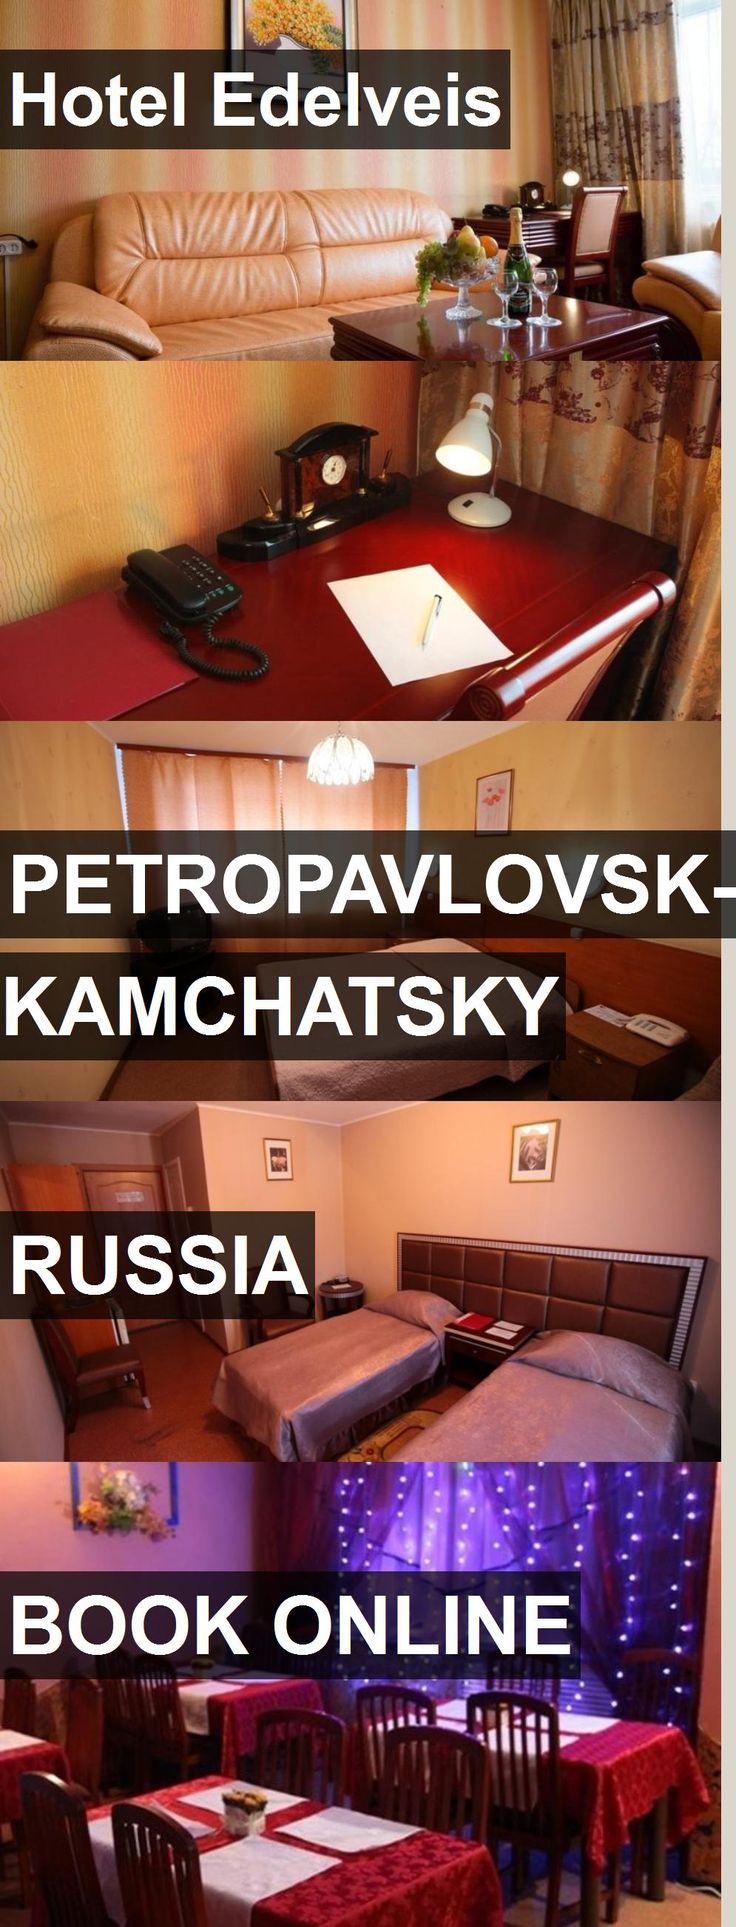 Hotel Hotel Edelveis in Petropavlovsk-Kamchatsky, Russia. For more information, photos, reviews and best prices please follow the link. #Russia #Petropavlovsk-Kamchatsky #HotelEdelveis #hotel #travel #vacation